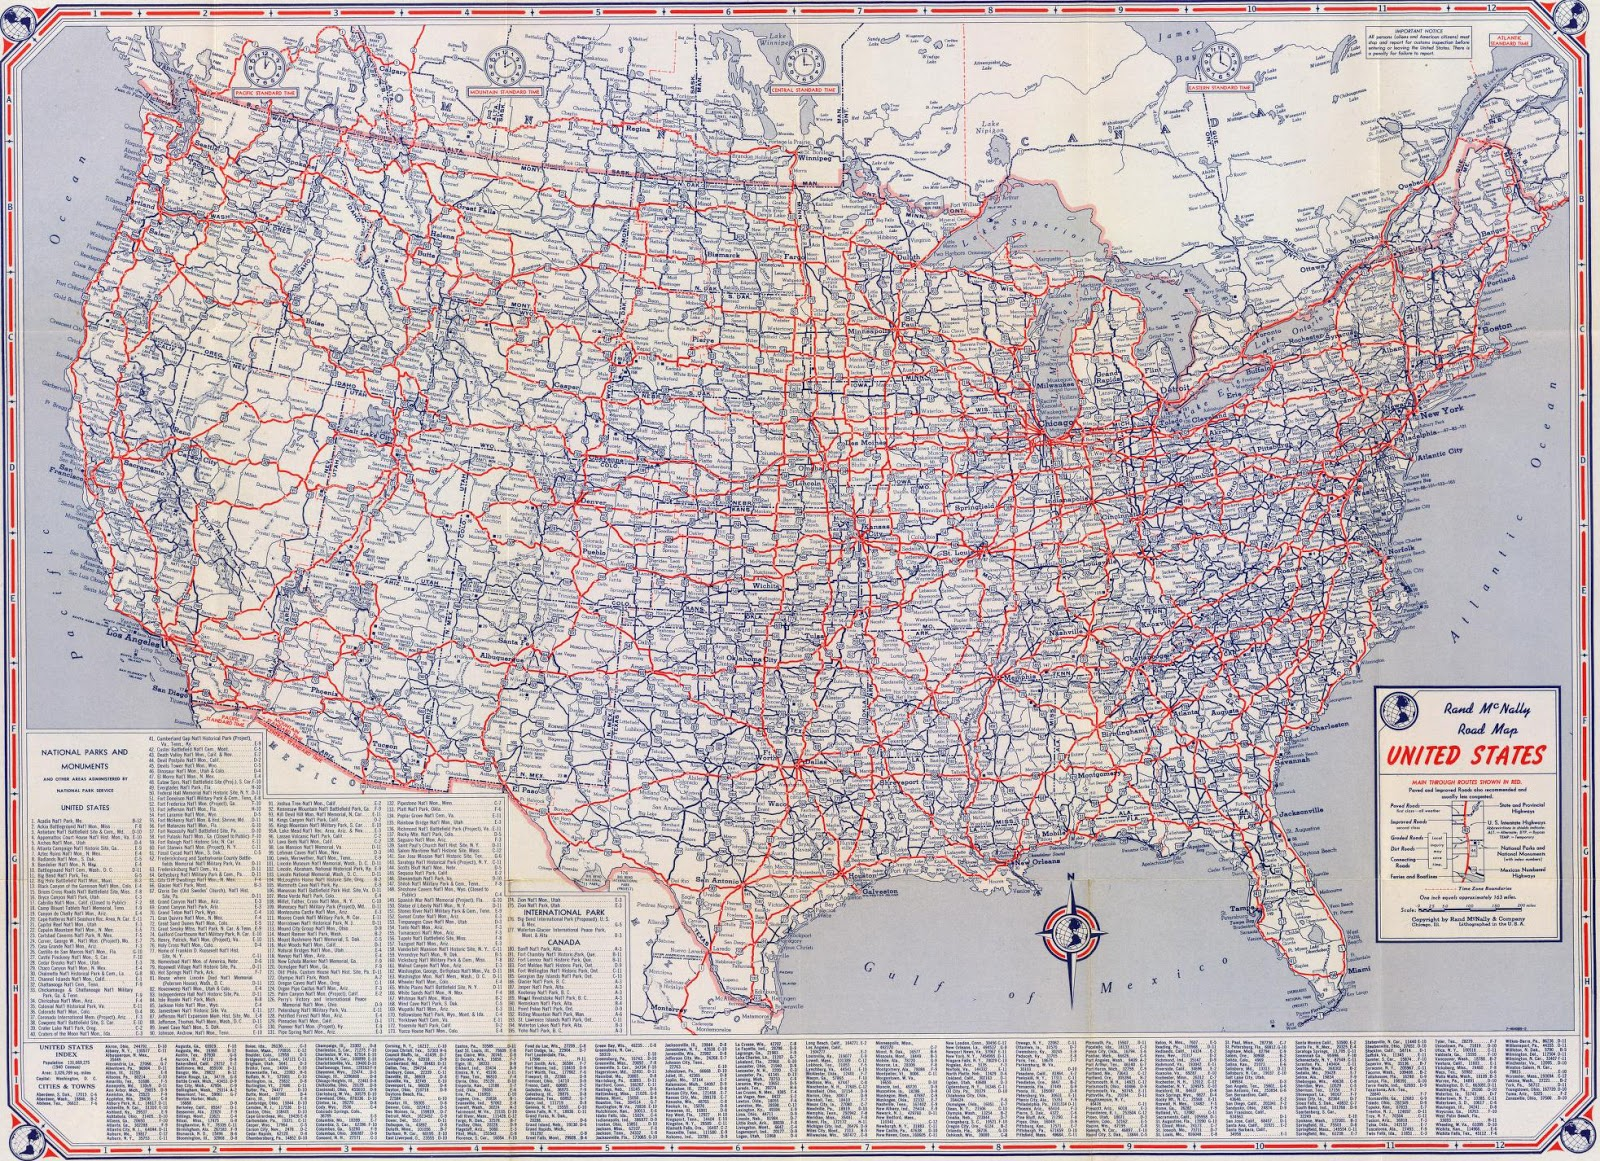 1947 rand mcnally us road map